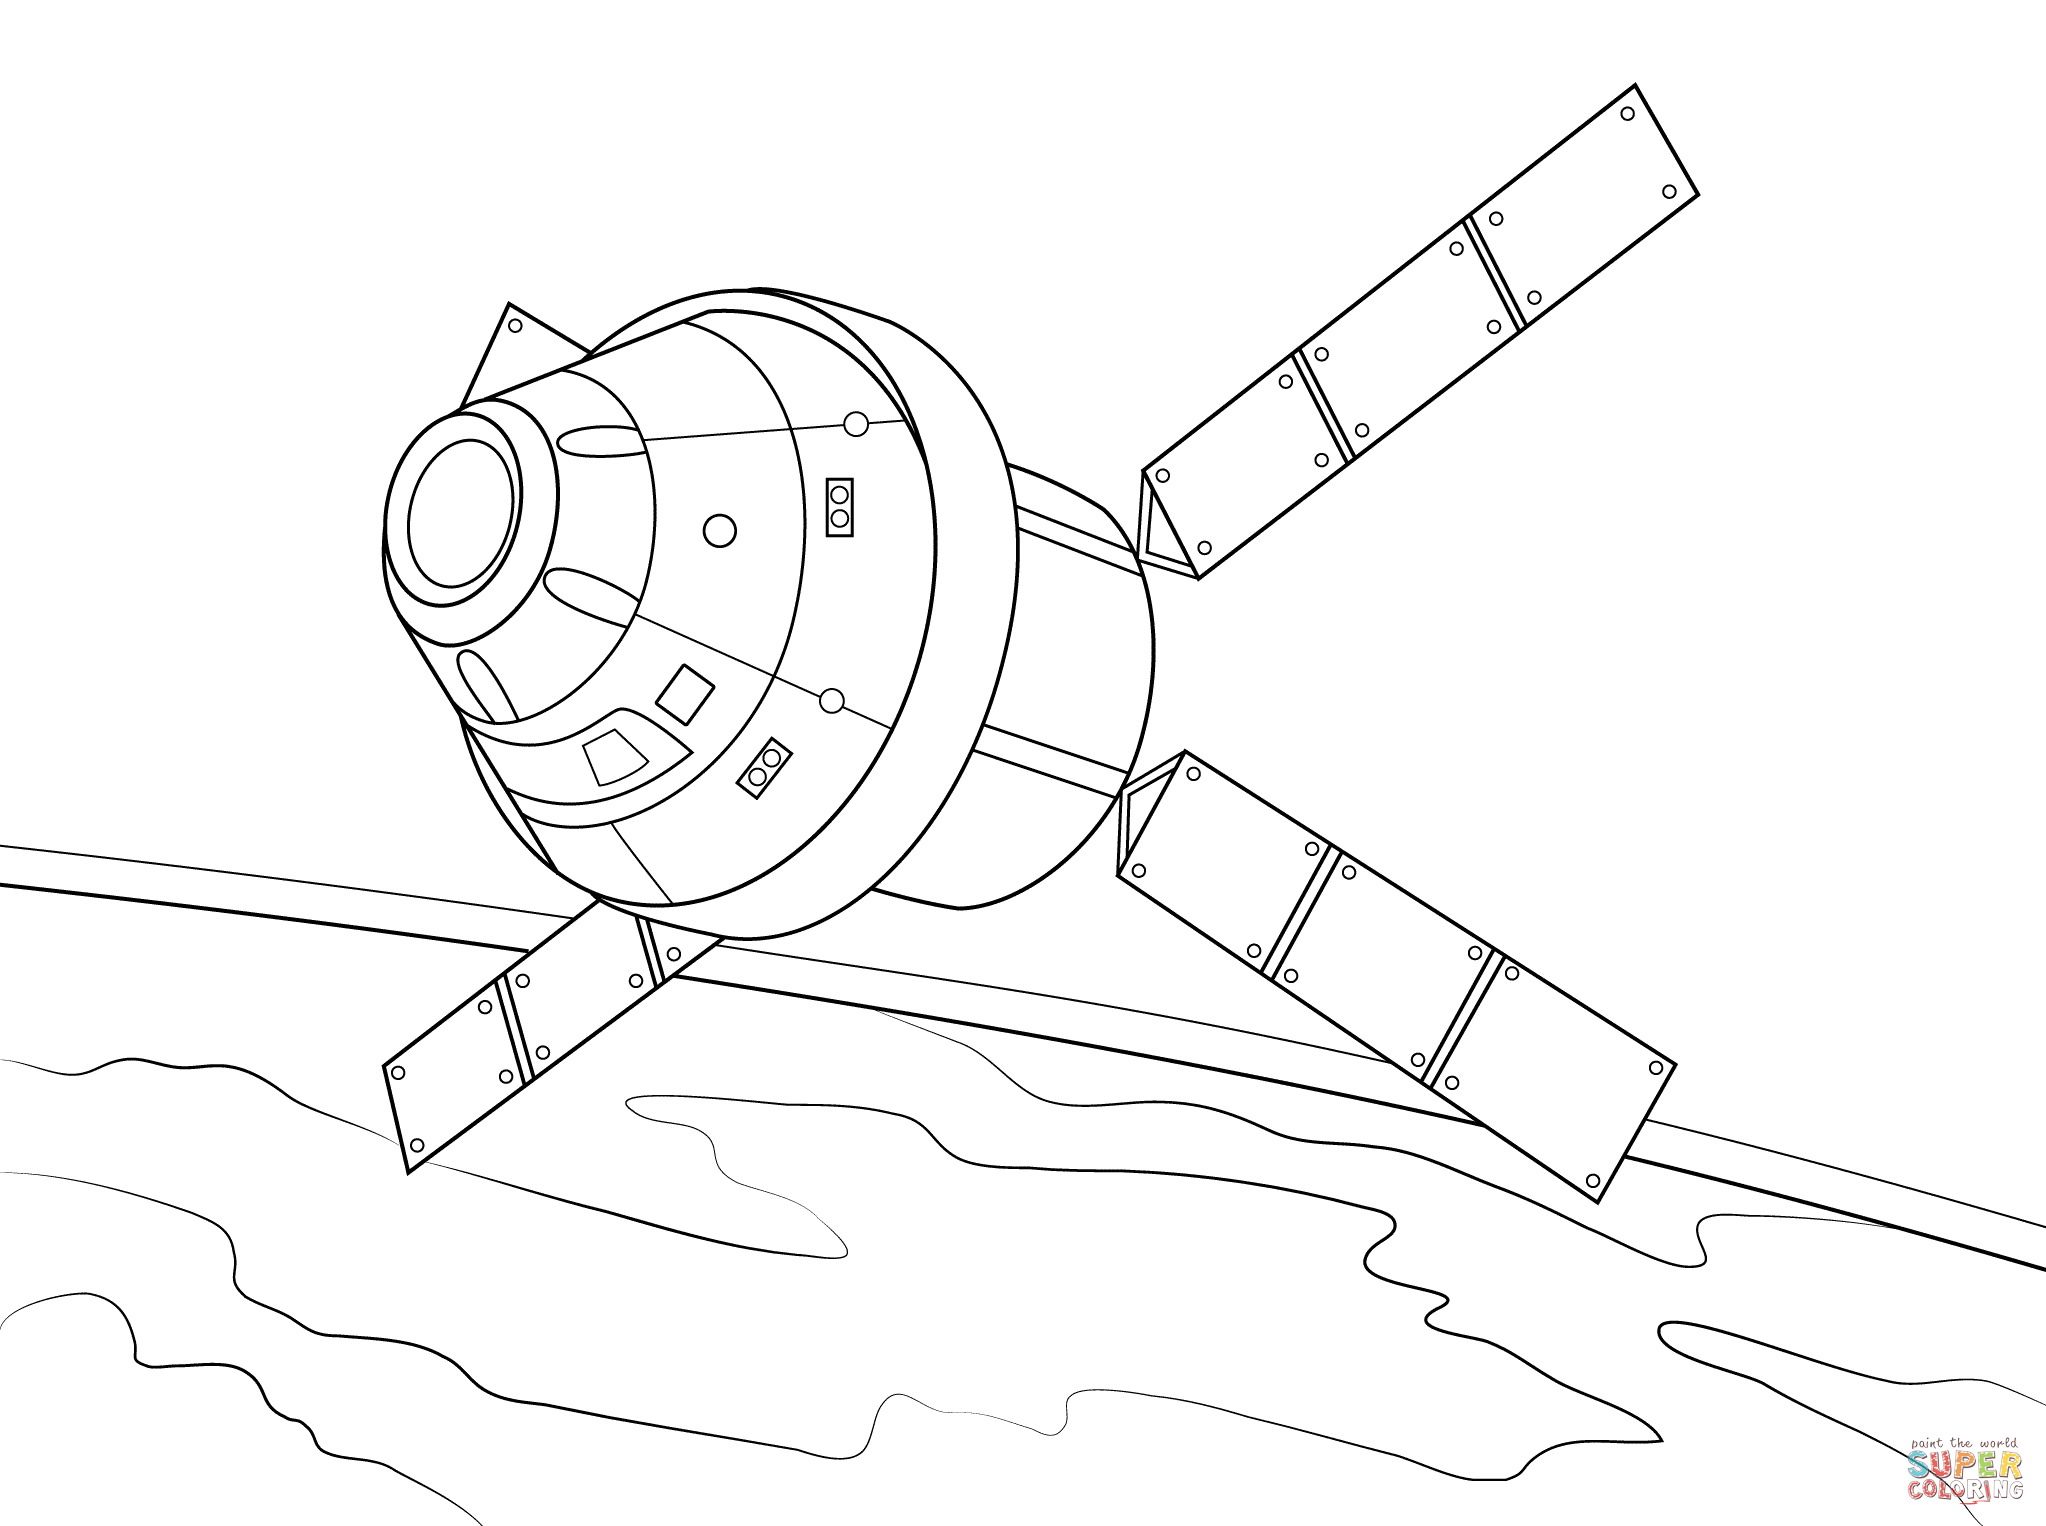 Orion Spacecraft with Atv Based Service Module coloring page.